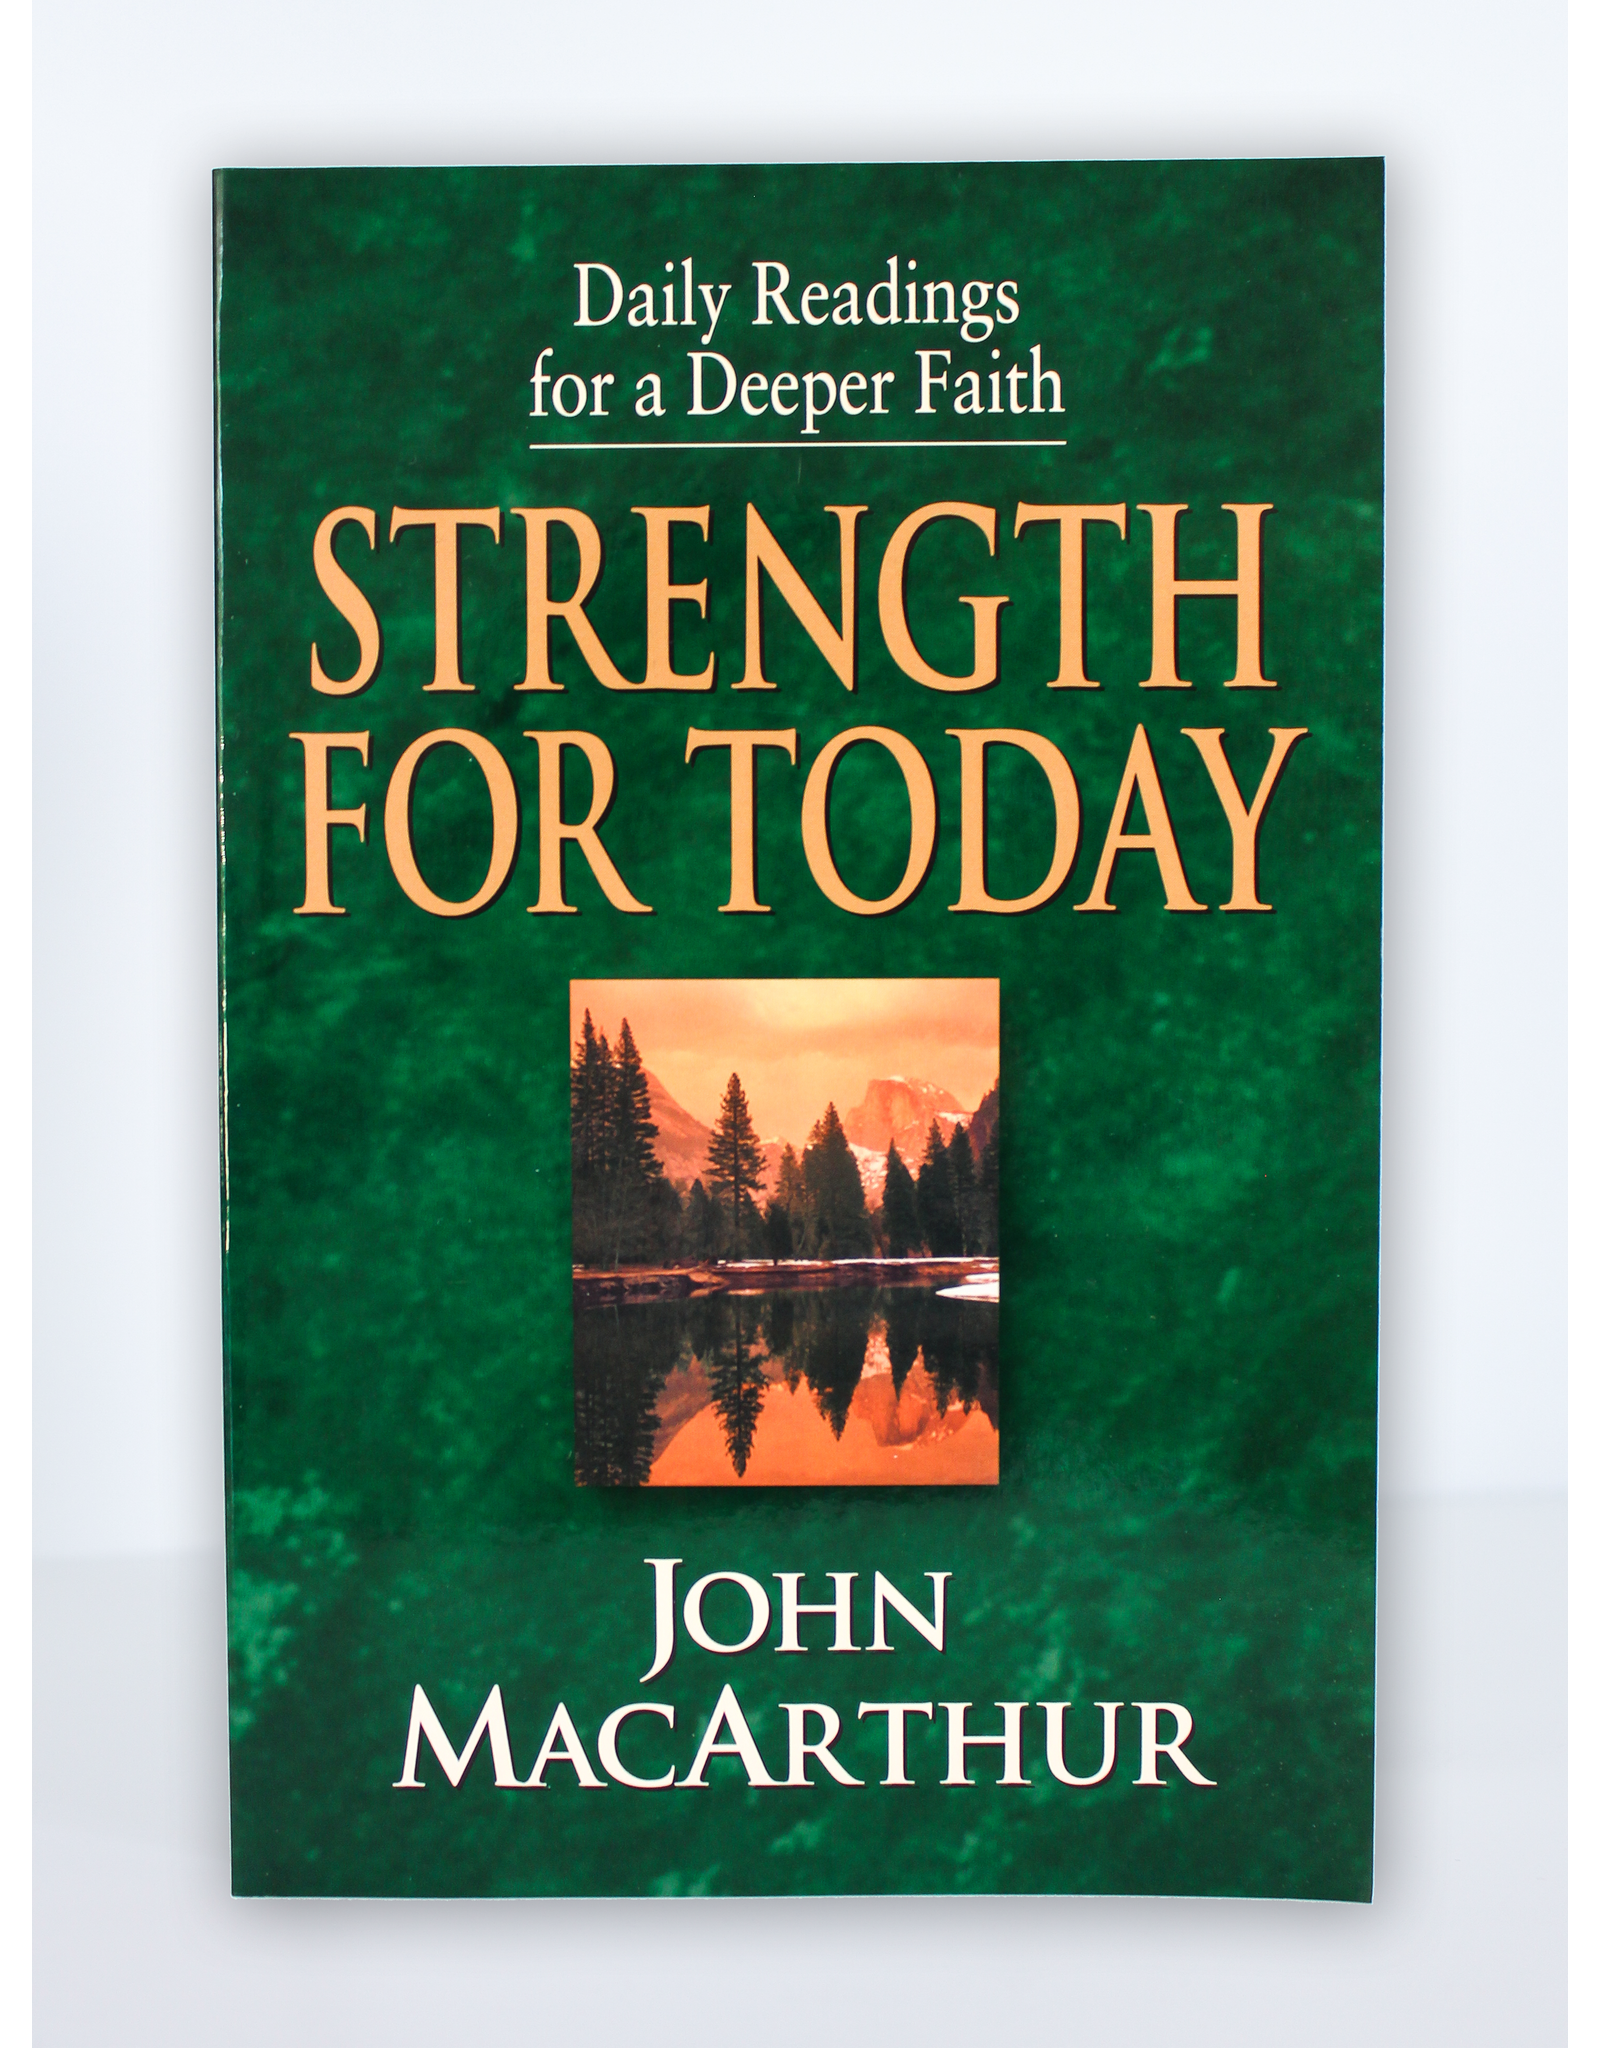 Crossway / Good News Strength for Today: Daily Readings for a Deeper Faith